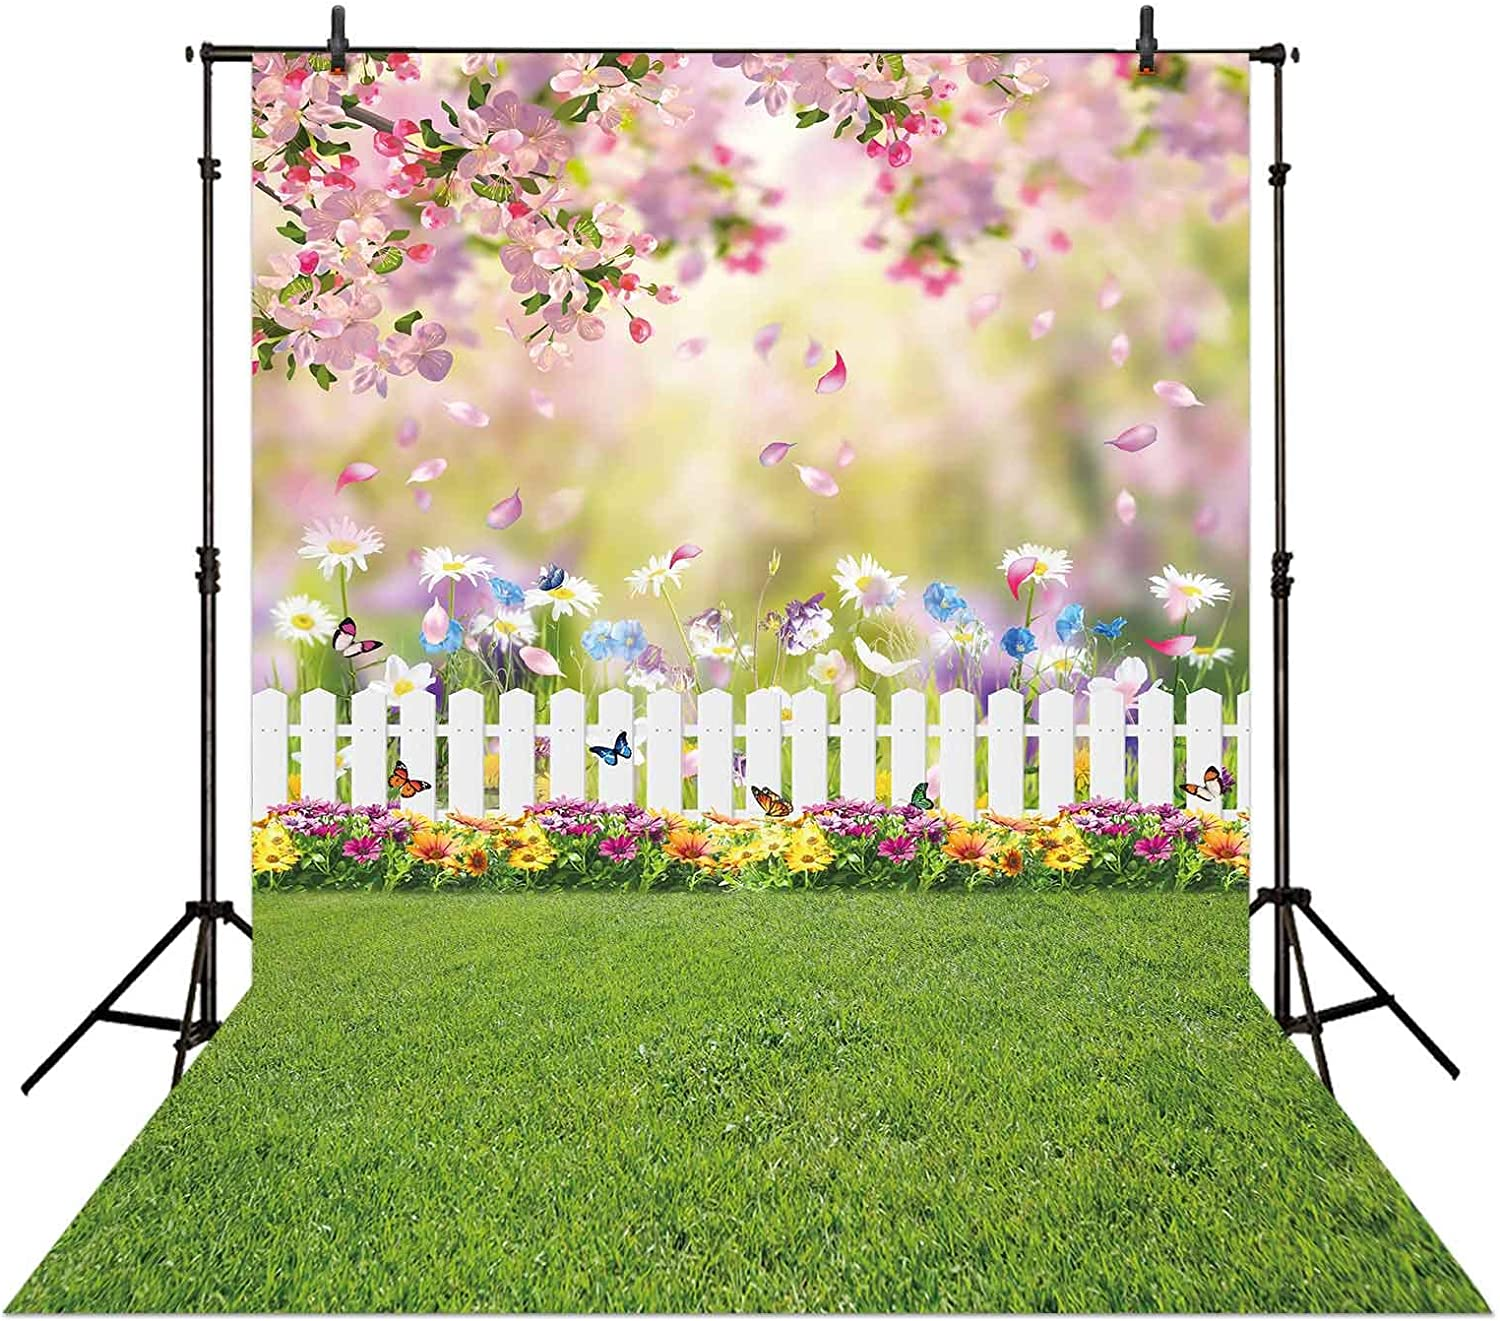 Allenjoy 5x7ft Spring Easter Garden Photography Backdrop Green Grass Lawn Pink Floral Butterfly Fence Background Baby Girl Kids Children Portrait Party Decorations Banner Photo Booth Studio Props